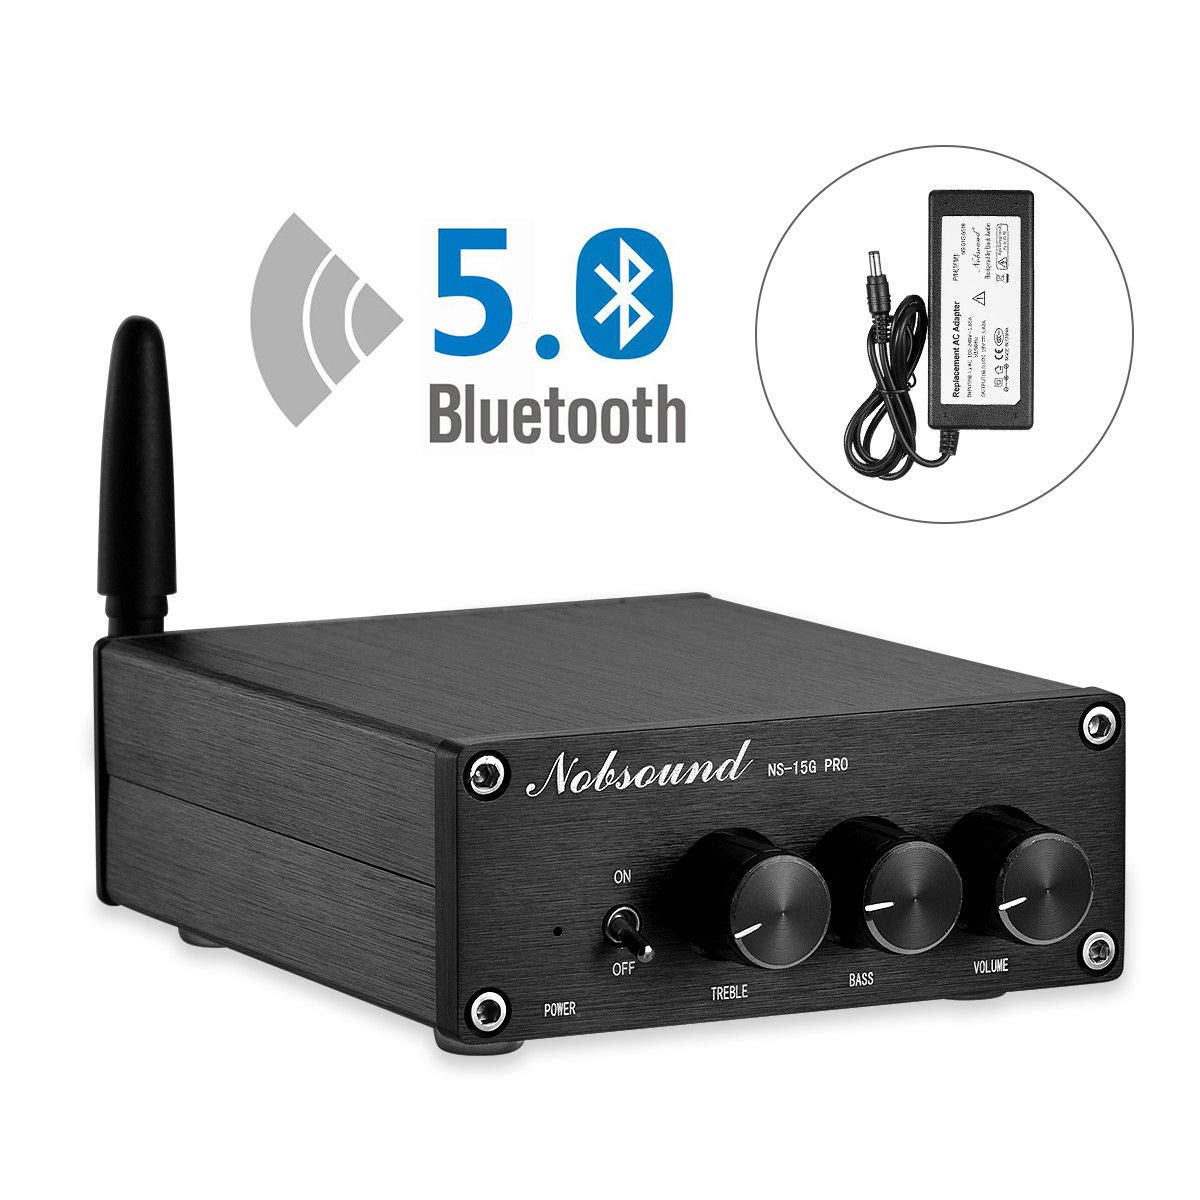 Nobsound 2 Channel Bluetooth 5.0 Amplifier , Class D Stereo Audio Amplifier , Mini Home Theater Power Amp , Digital Power Amplifier Receiver , 200W , Treble & Bass Control (NS-15G PRO) by Douk Audio